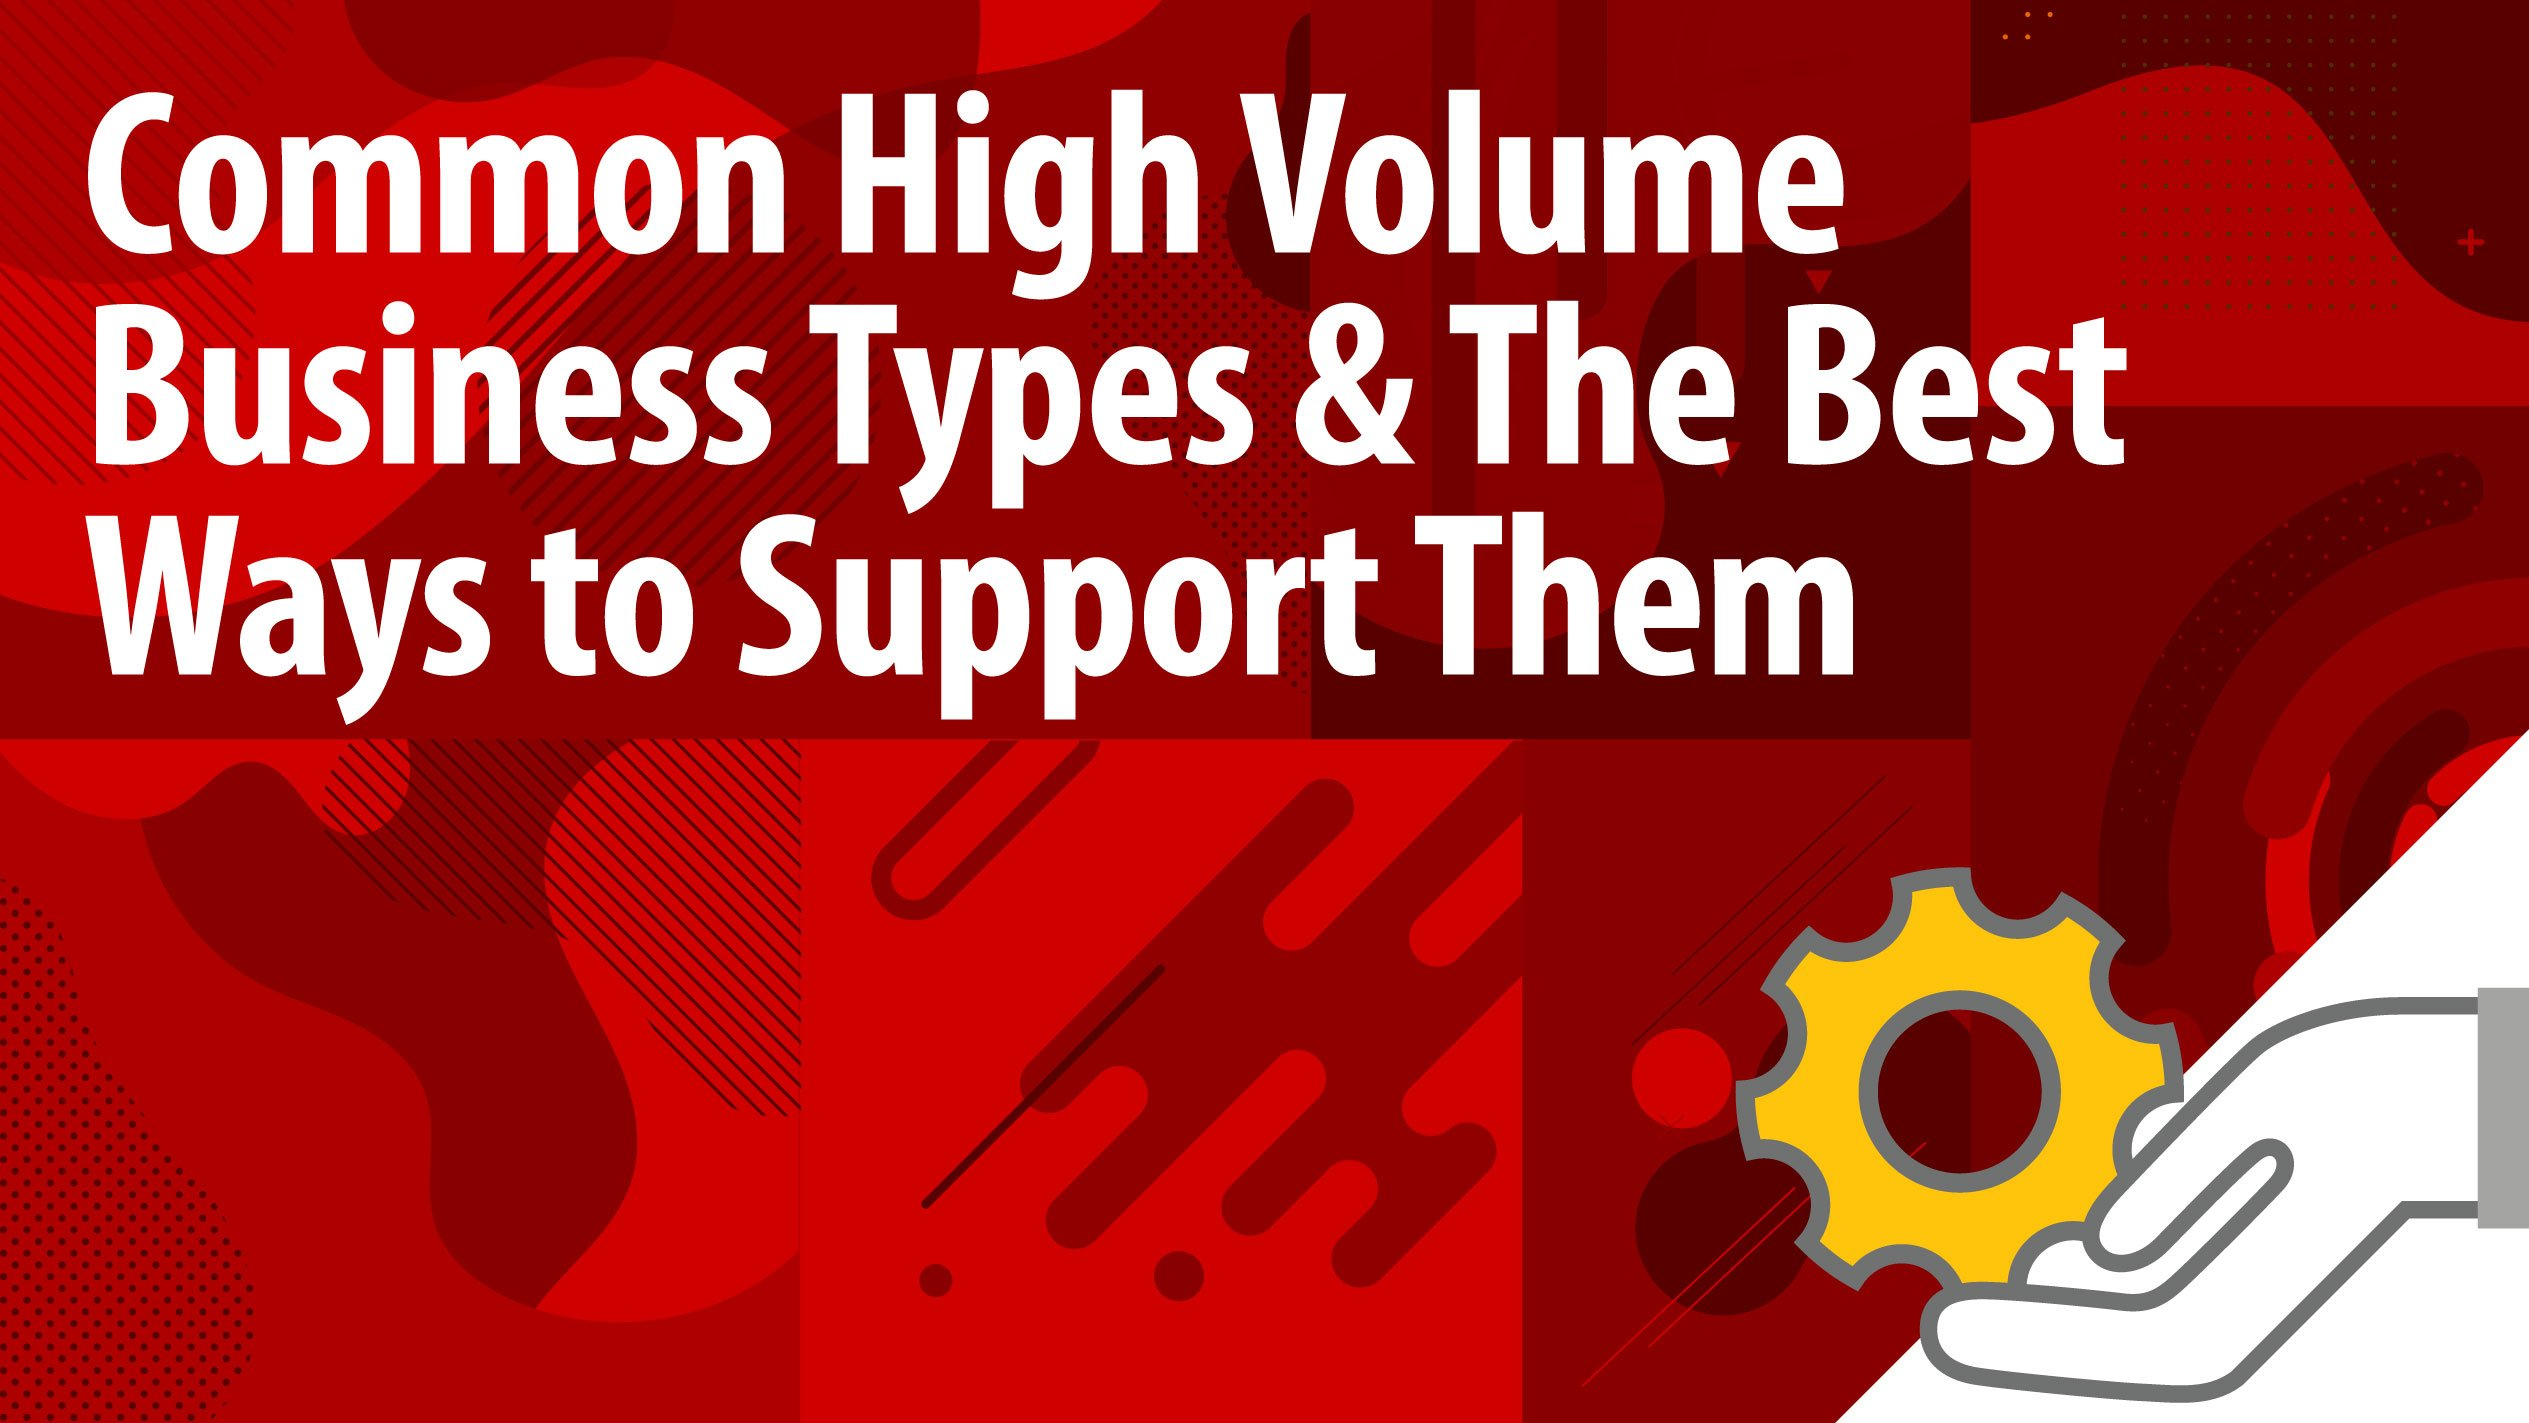 Common High Volume Business Types & The Best Ways to Support Them